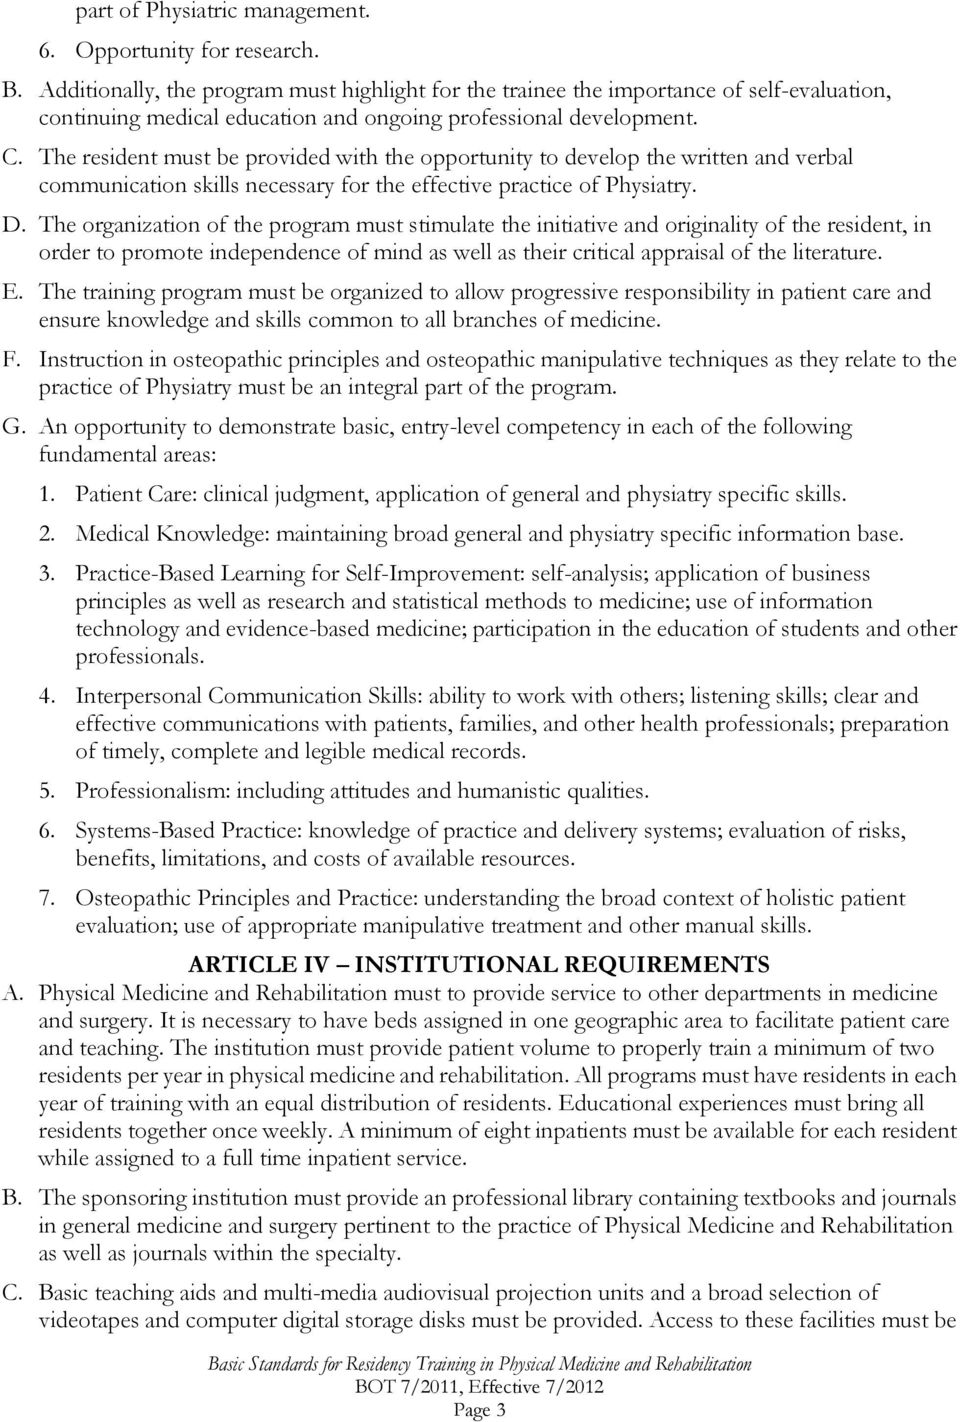 The resident must be provided with the opportunity to develop the written and verbal communication skills necessary for the effective practice of Physiatry. D.